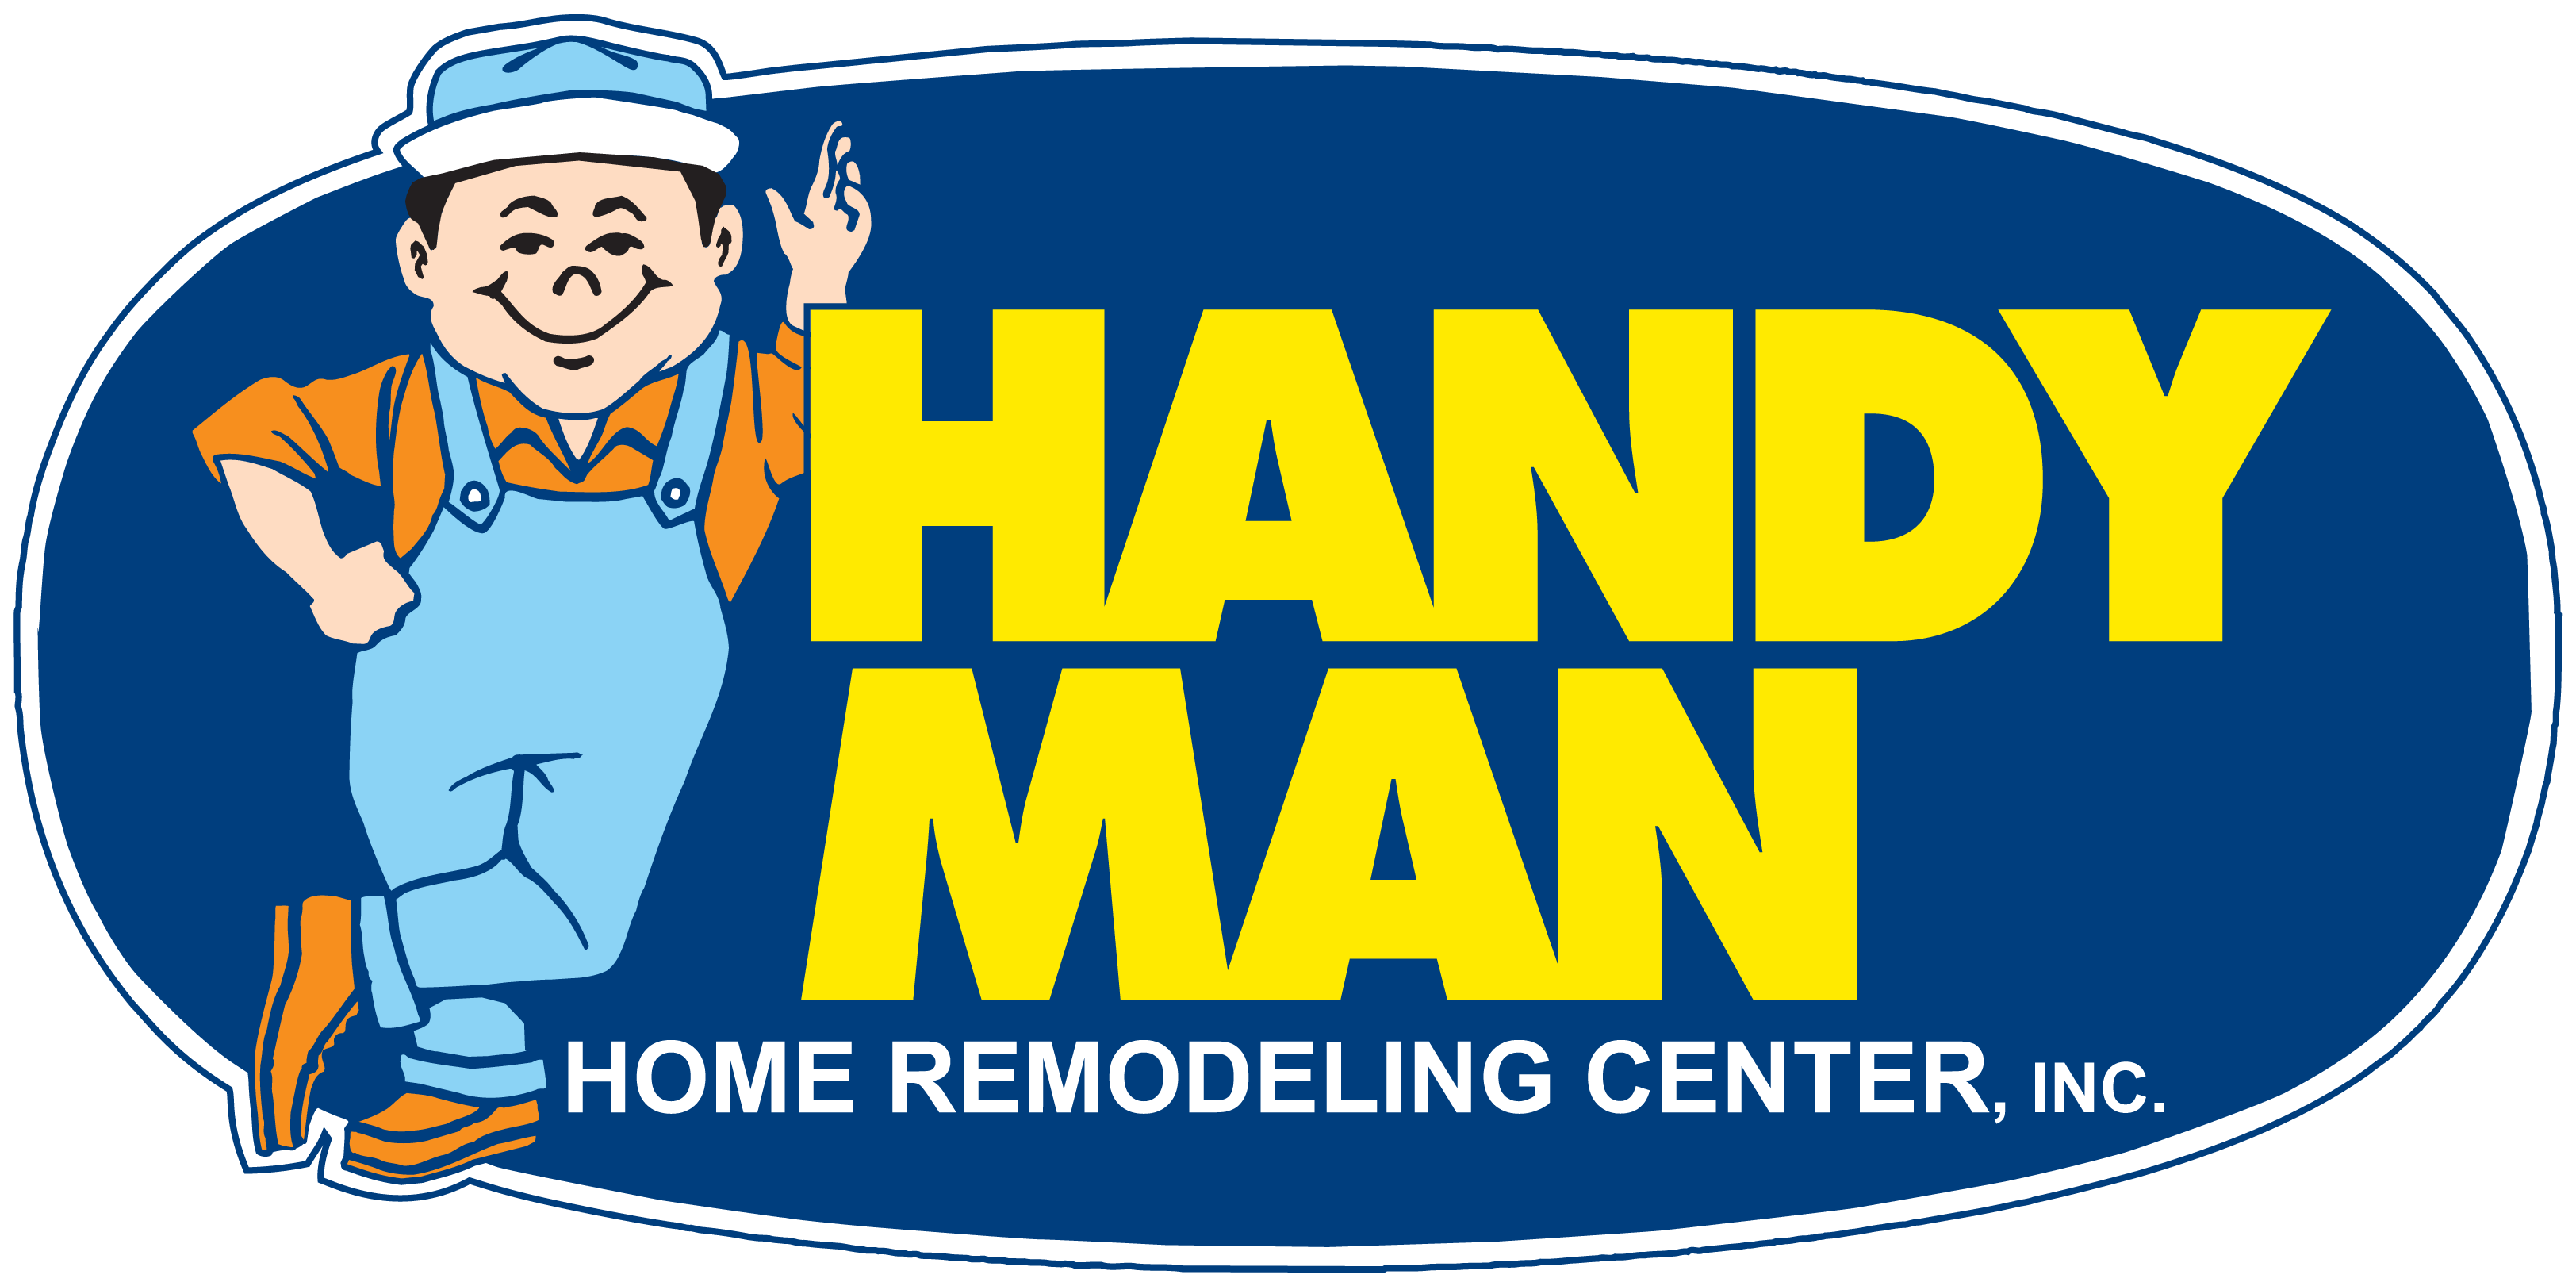 Handy Man Home Remodeling Center